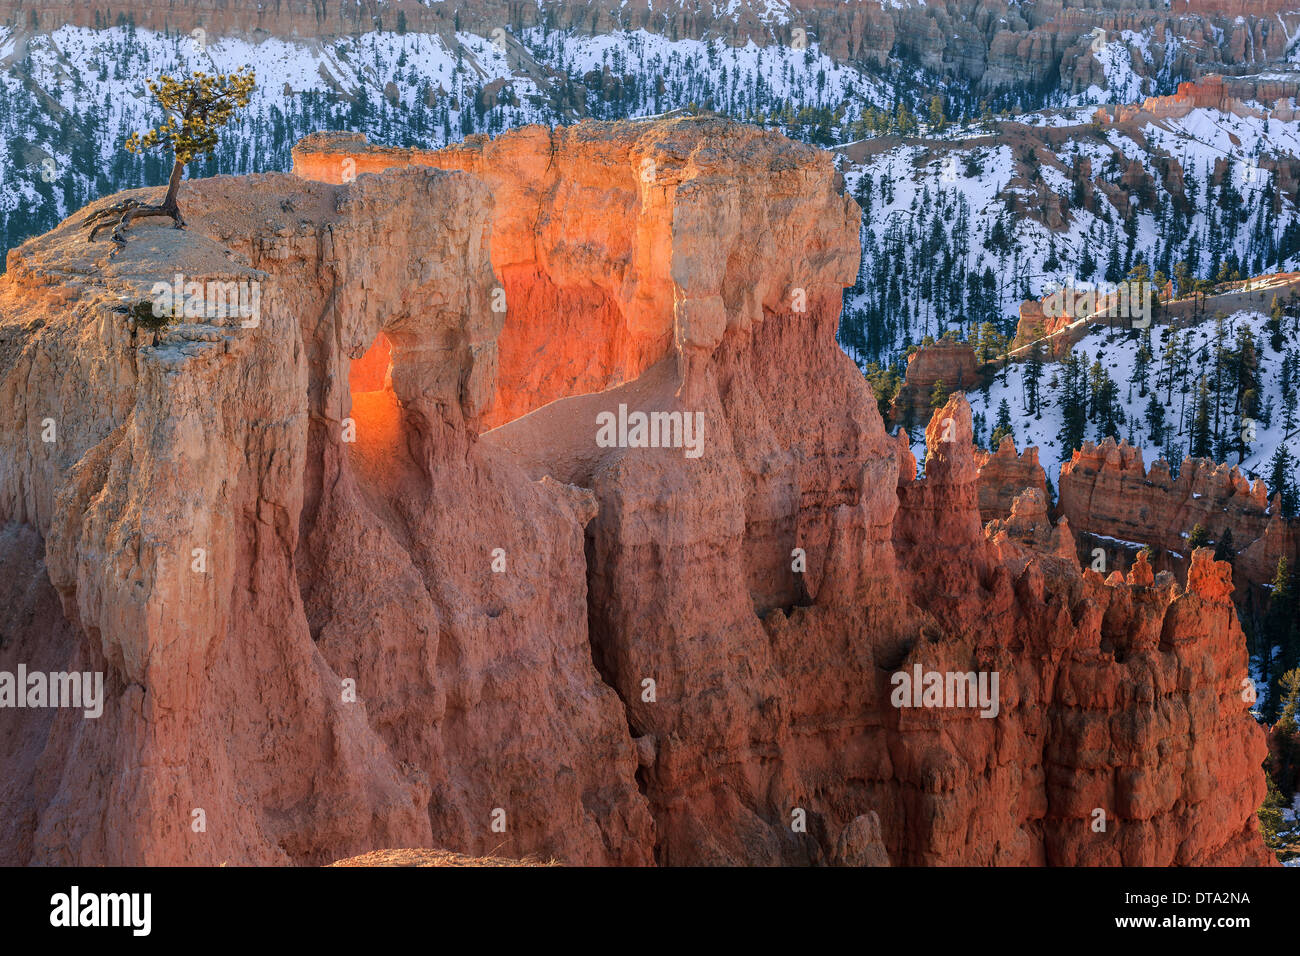 Lever du soleil d'hiver dans le Parc National de Bryce Canyon, Utah - USA Photo Stock